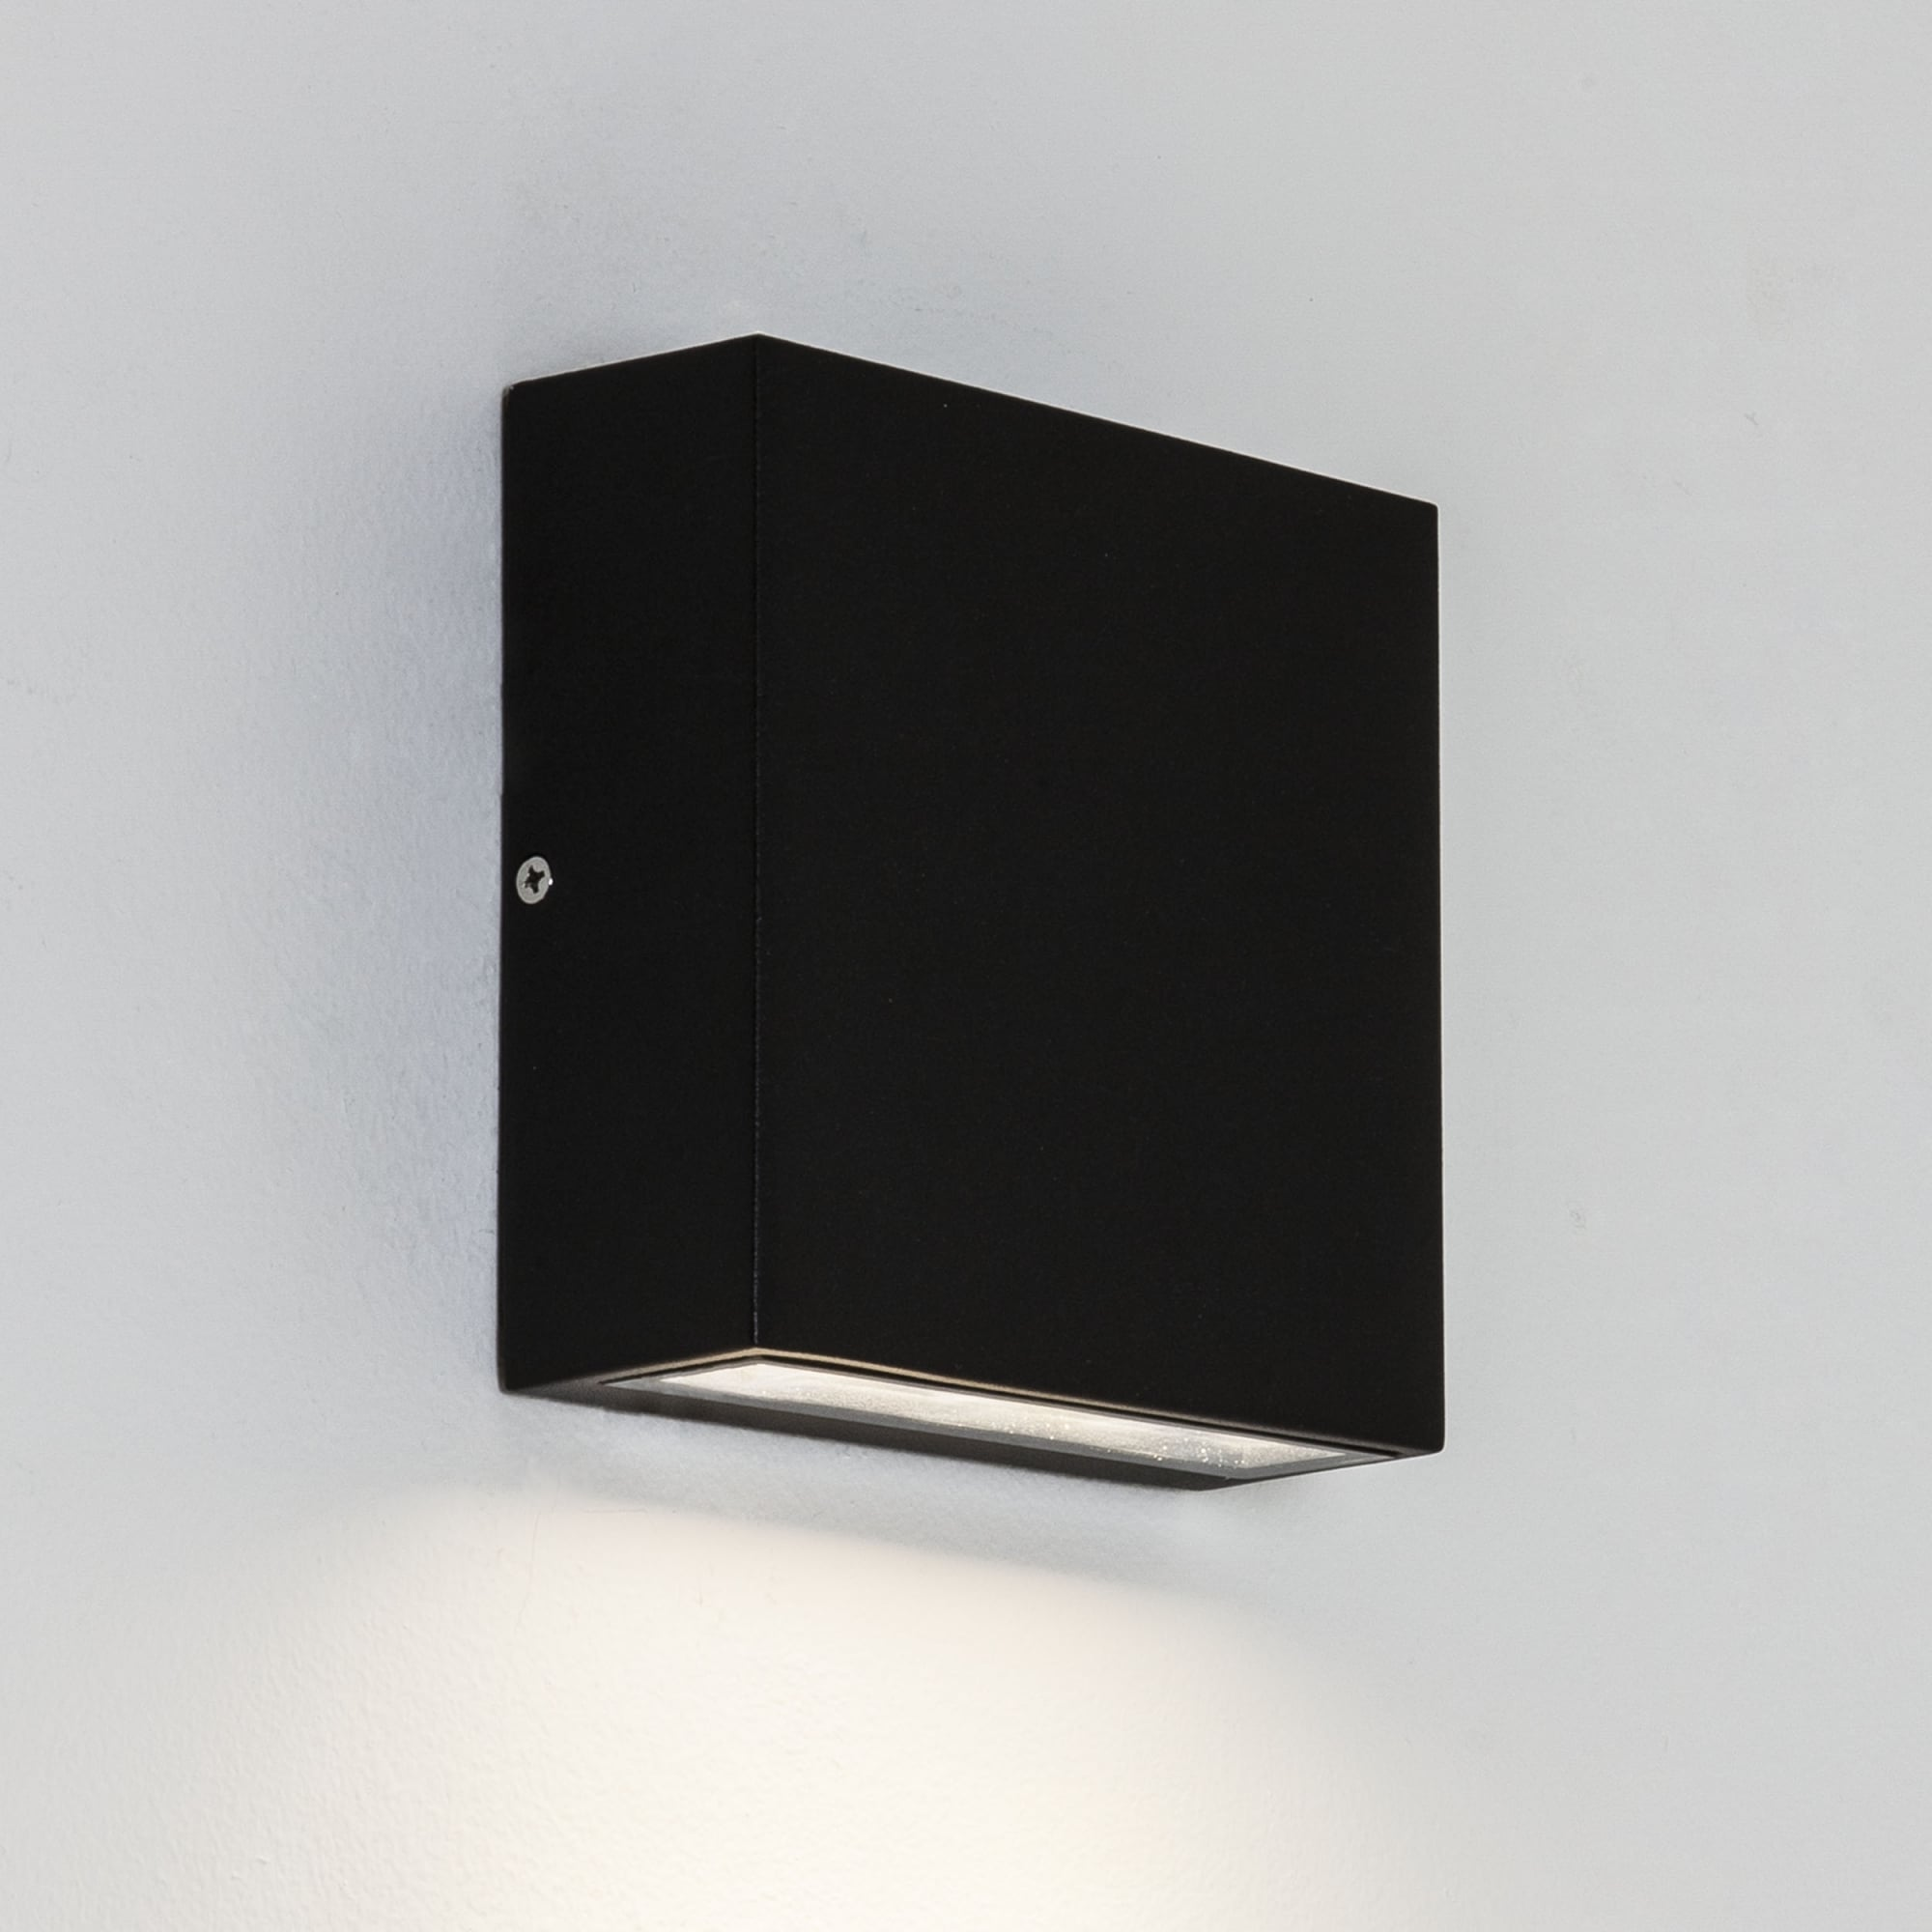 Picture of: Astro Lighting 7201 Elis Led Single Ip54 Exterior Wall Light In Black